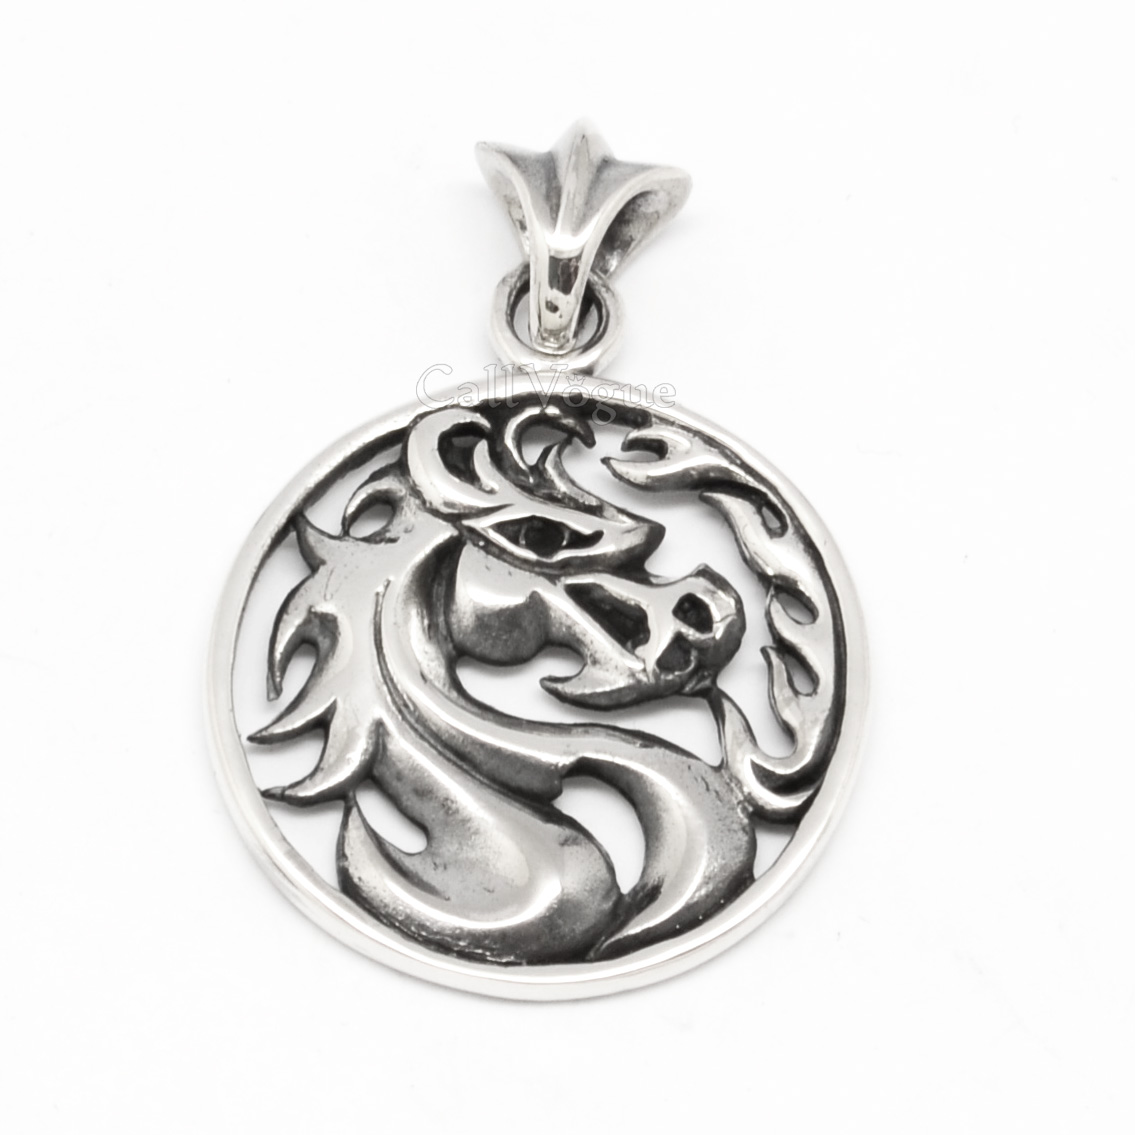 Wild horse pendant 925 sterling silver medal callvogue wild horse pendant 925 sterling silver medal aloadofball Gallery